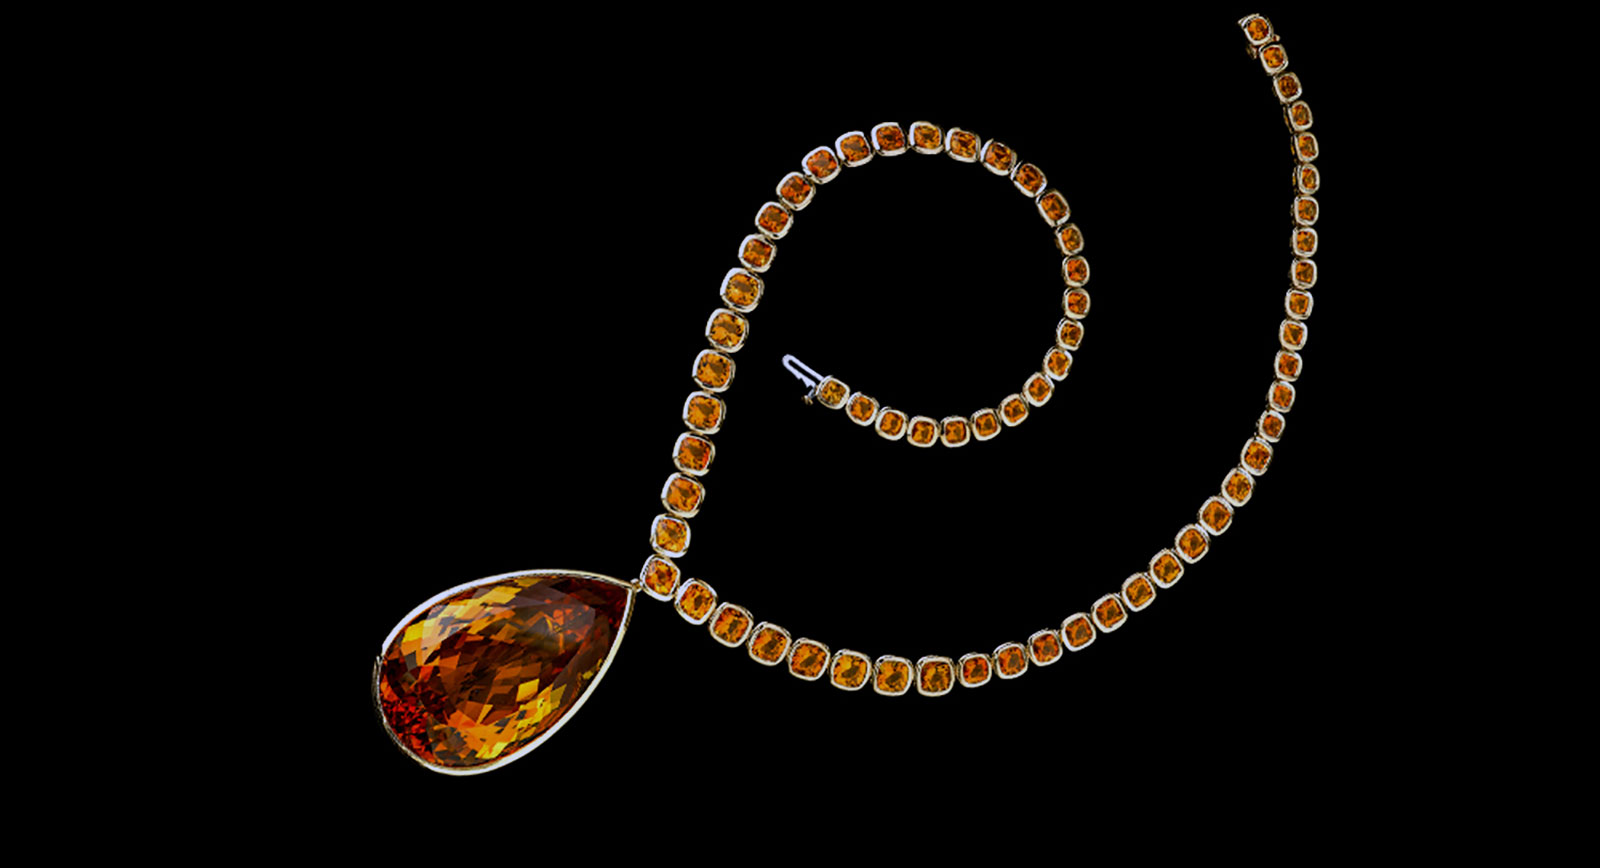 Robert Procop and Angelina Jolie necklace with 177.11-carat pear-shaped citrine drop